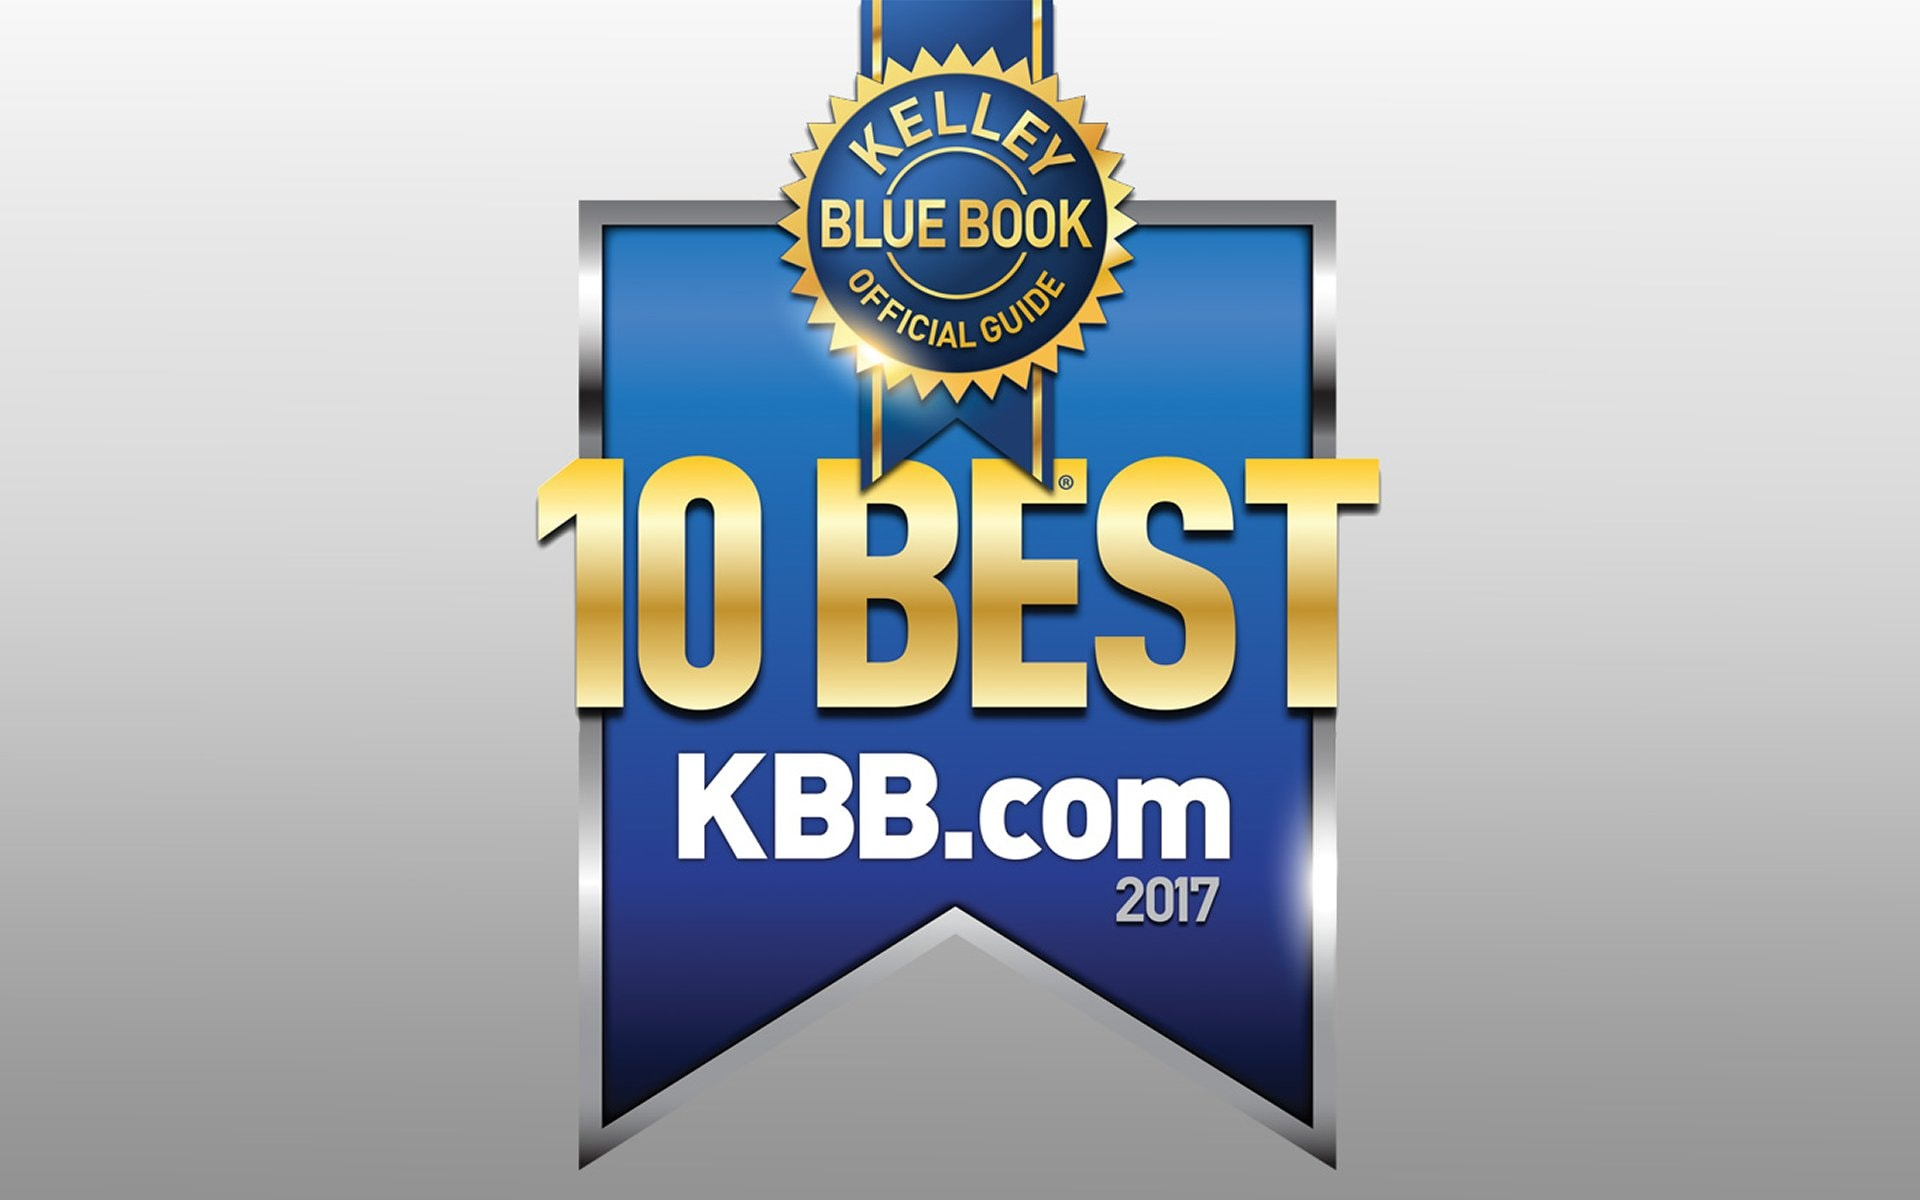 Kelly Blue Book 10 Best